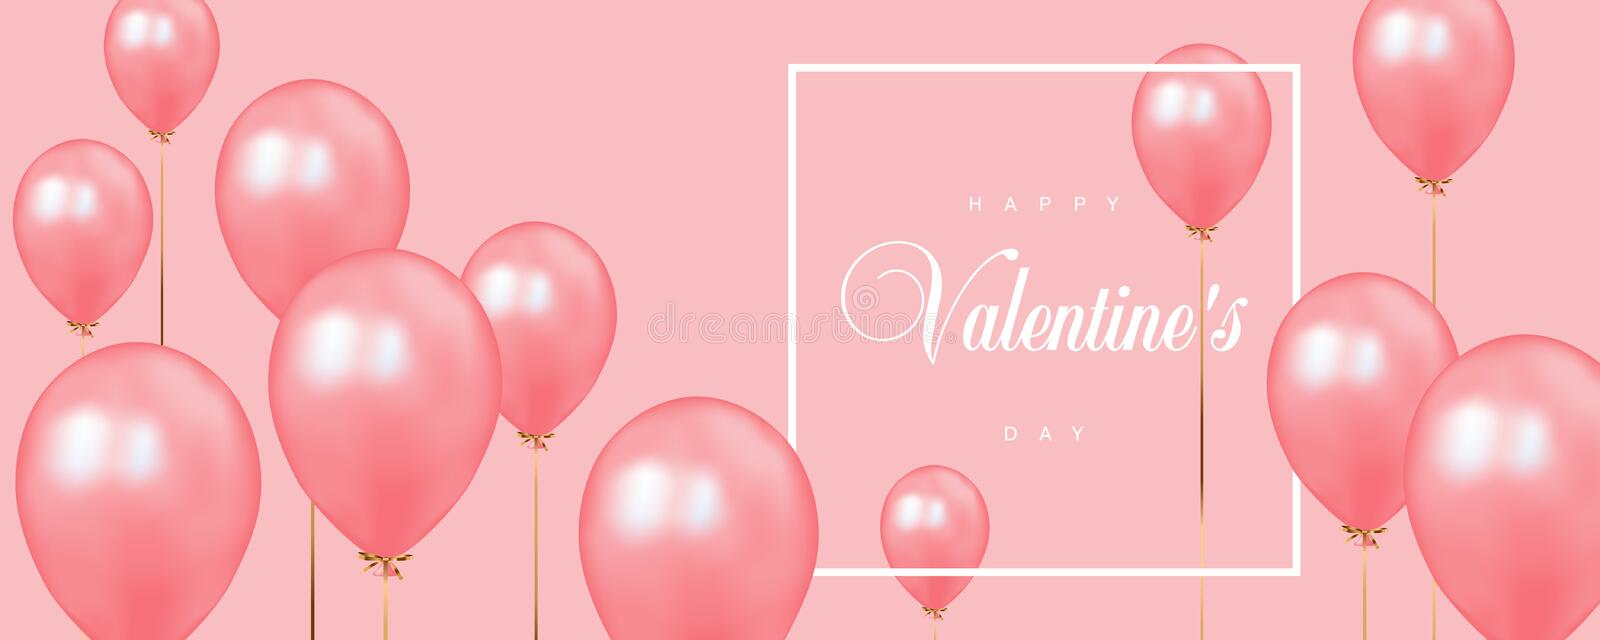 Happy Valentines Day vector template with calligraphic lettering on pink background with pink balloons. vector illustration